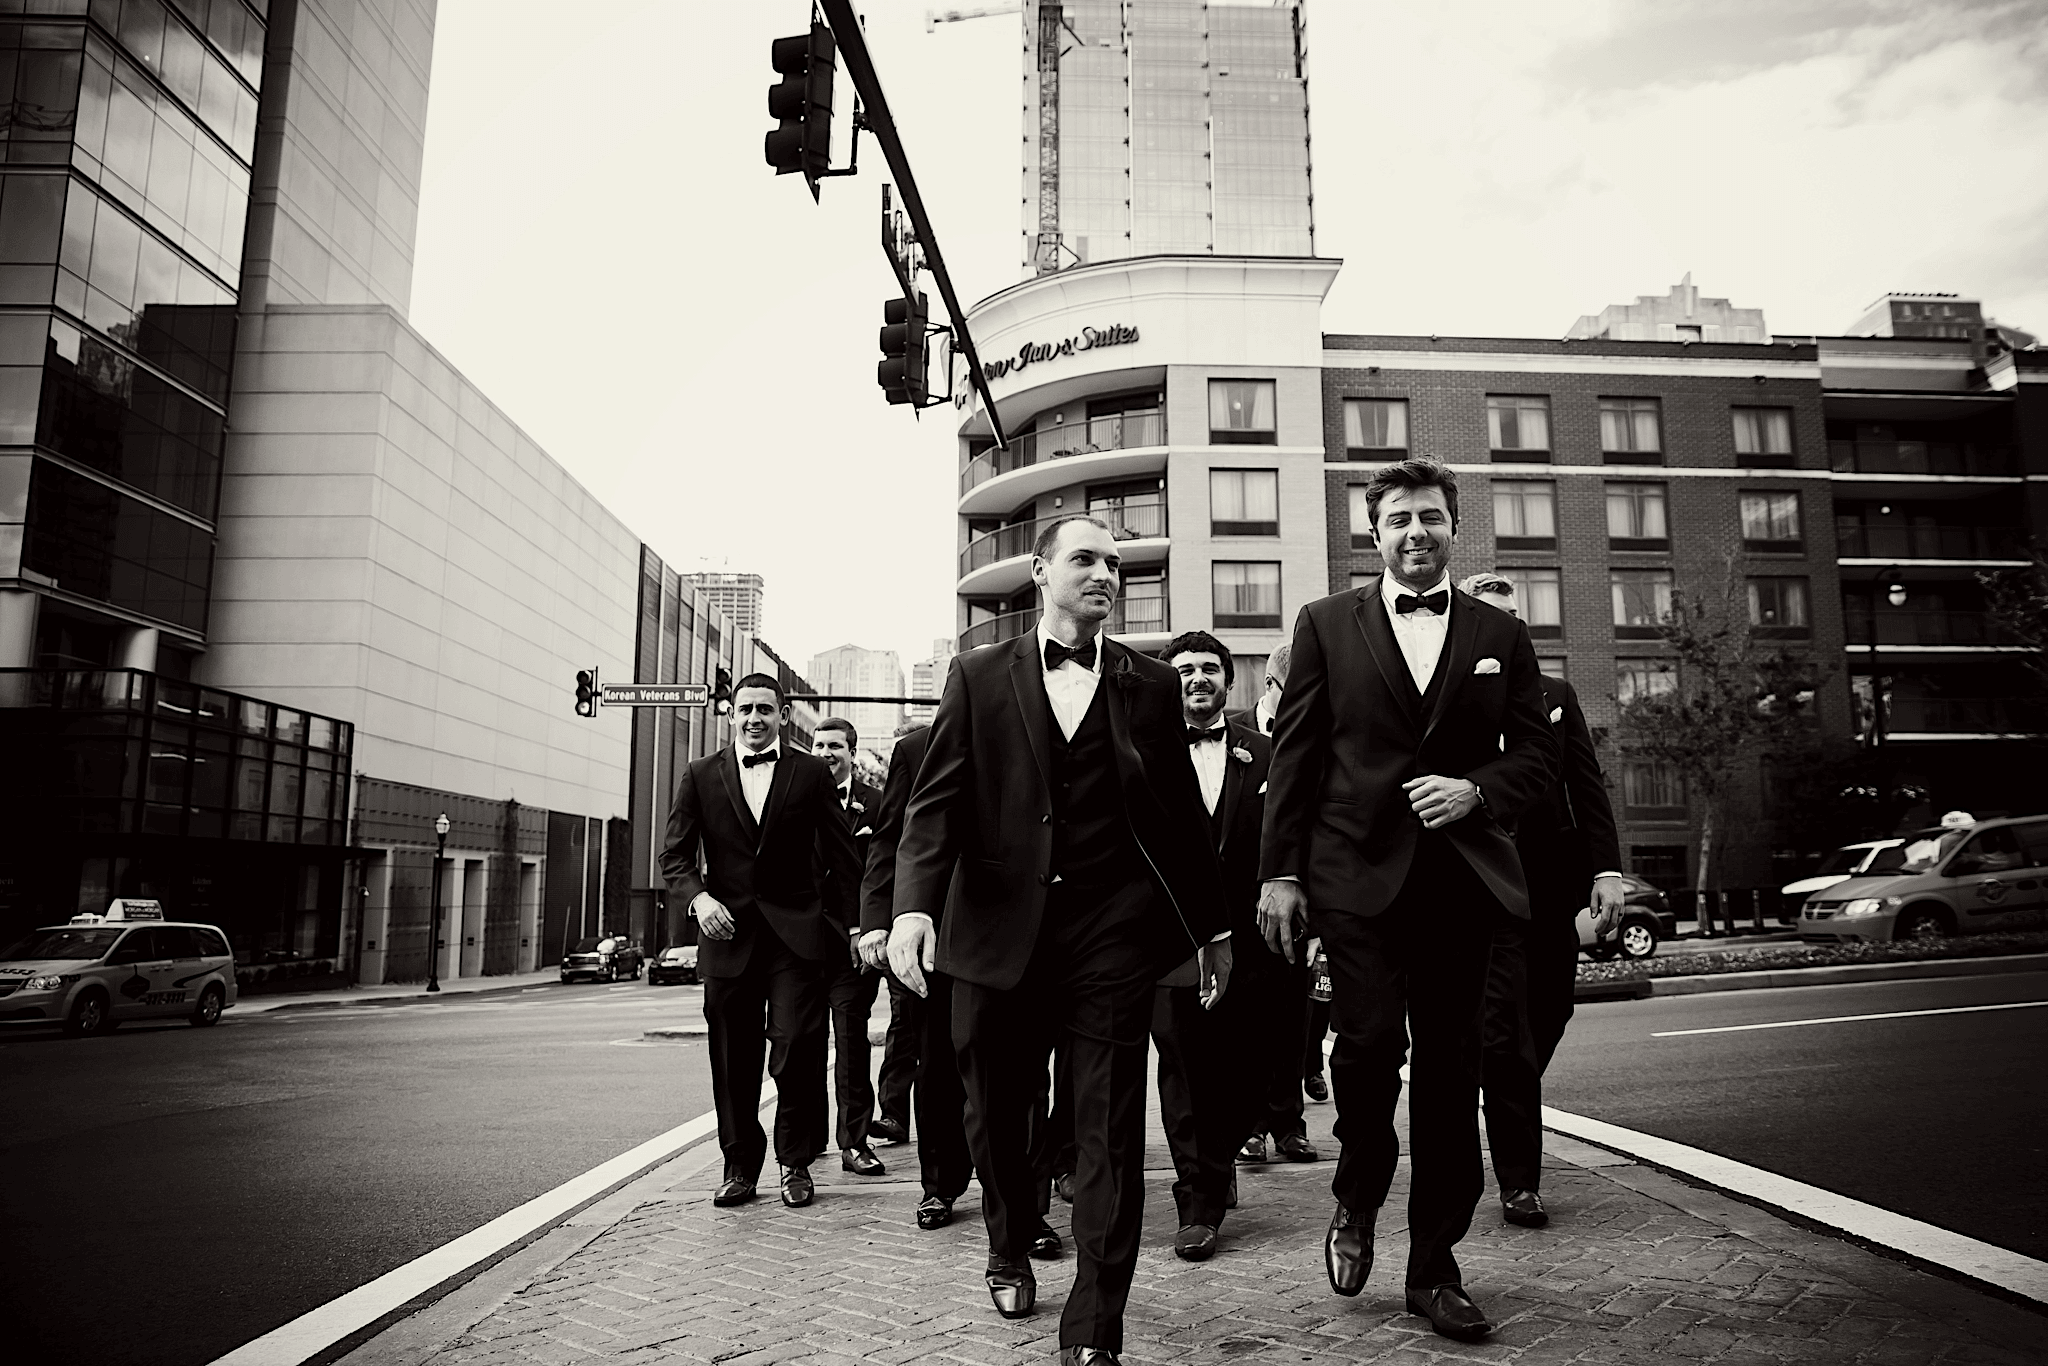 025-The_Bell_Tower_Nashville_Wedding_Stevie_Ramos_Photography-compressor